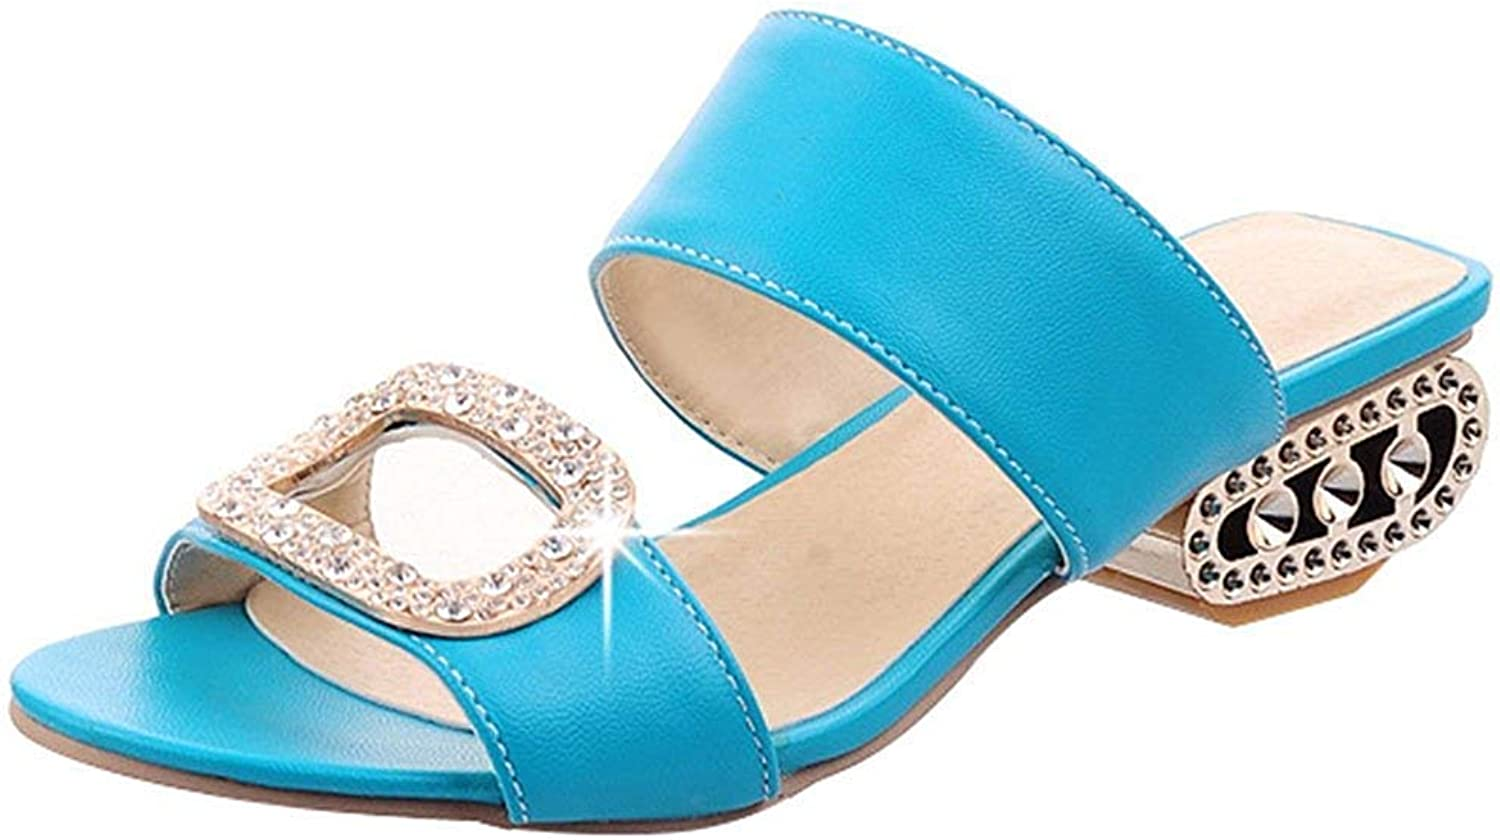 Gcanwea Women's Comfy Rhinestone Open Toe Clogs shoes - Solid color Strappy Buckle - Block Low Heel Slide On Sandals bluee 4 M US